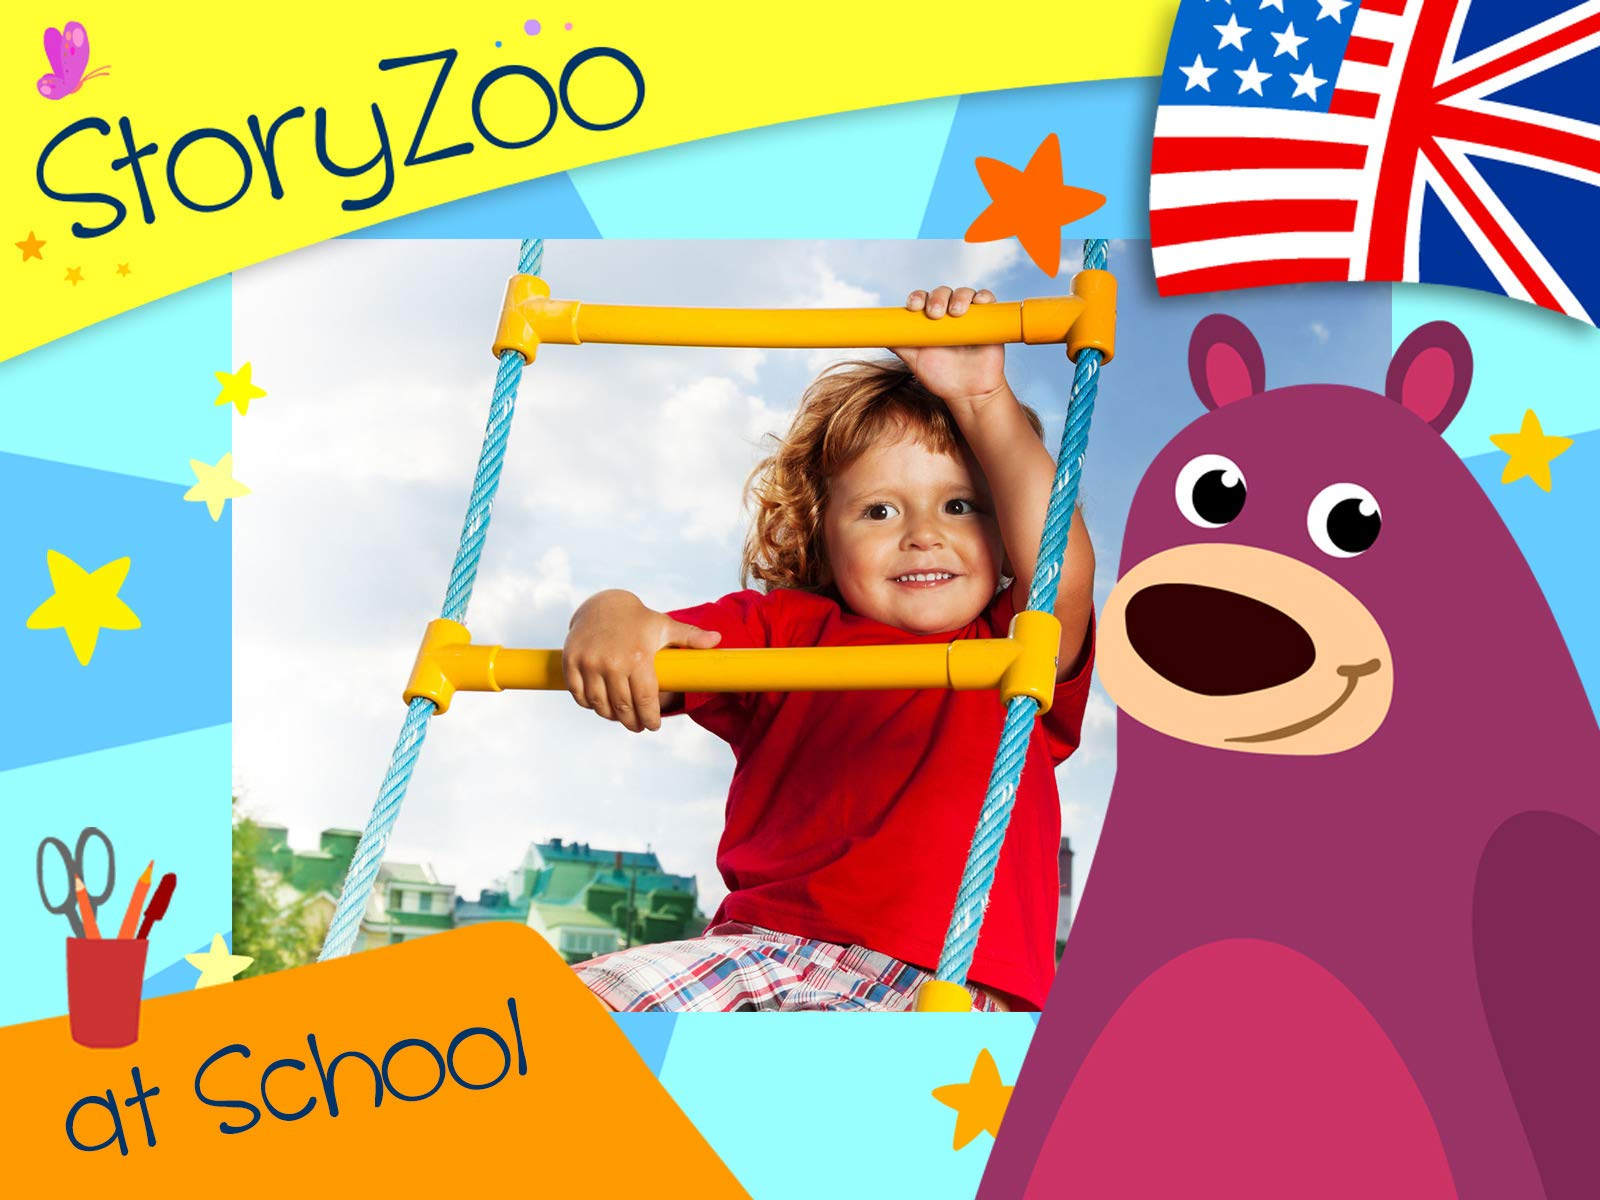 Clip: StoryZoo at school on Amazon Prime Instant Video UK